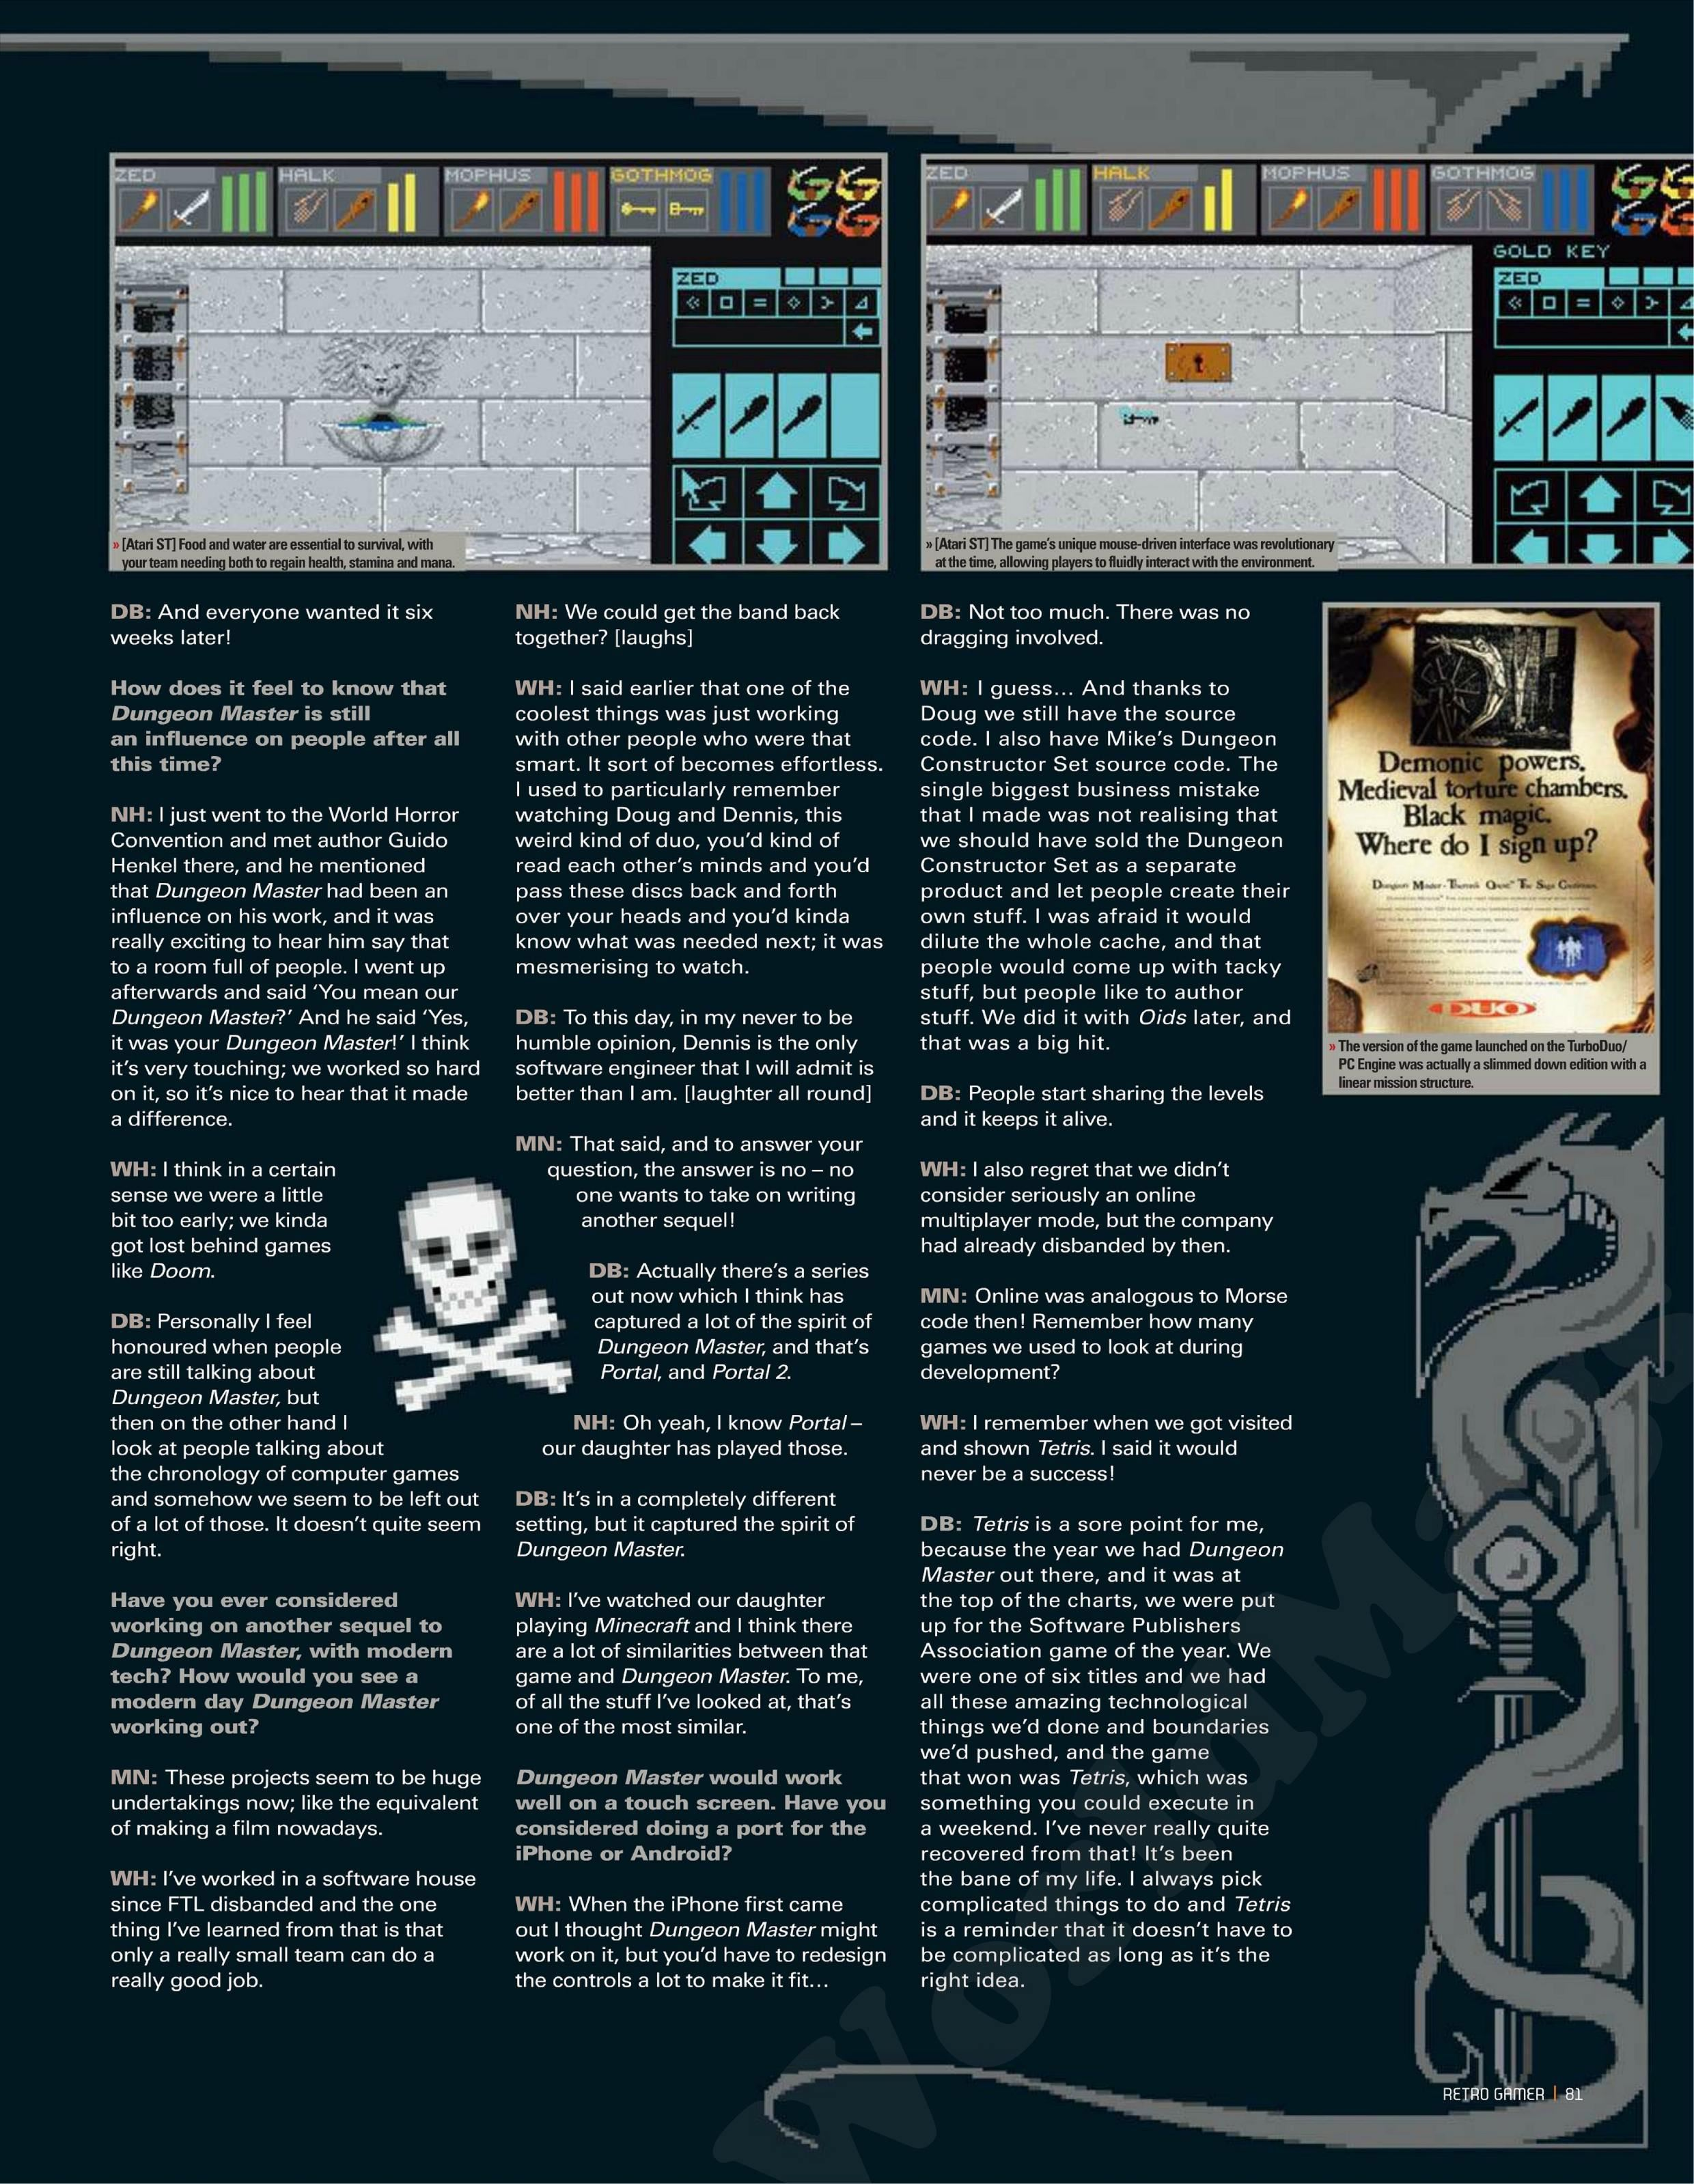 Dungeon Master Game Series Article published in British magazine 'Retro Gamer', Issue #105 July 2012, Page 81